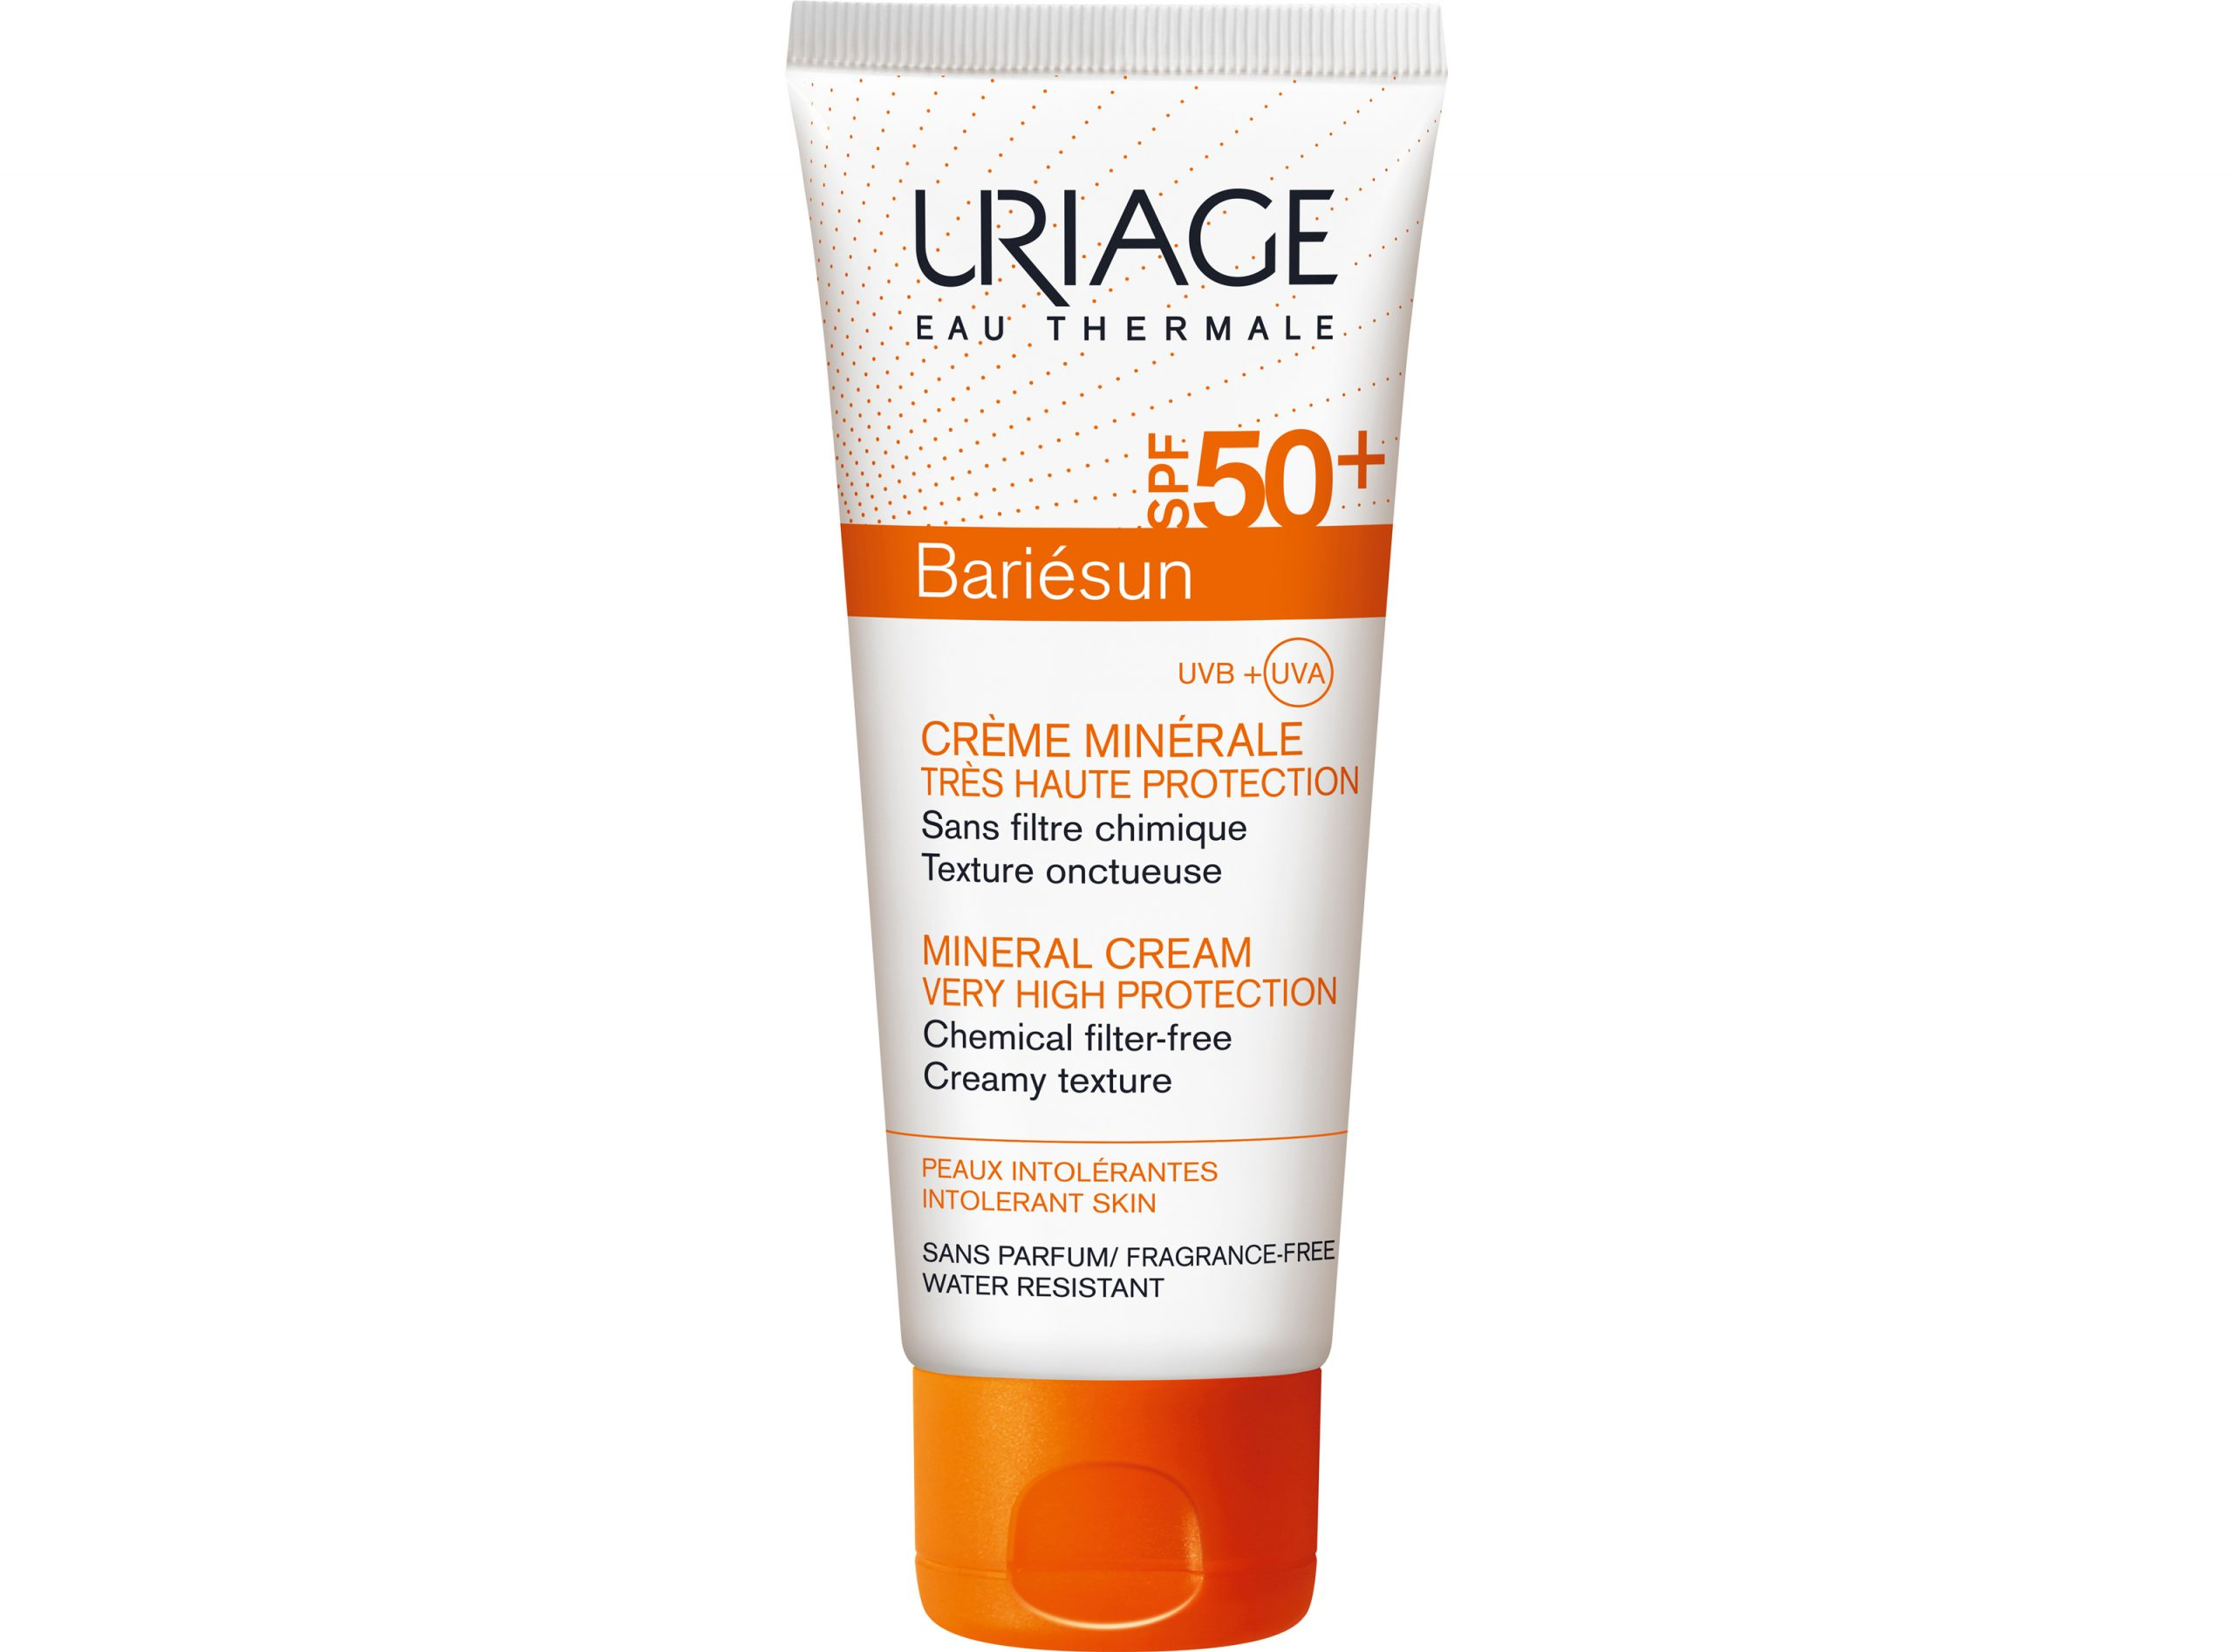 Everything you need to know about sunscreen on staycation, 61e23eea 0921 4d3c 8cd7 6843d72cfd00 scaled%, daily-dad, health%